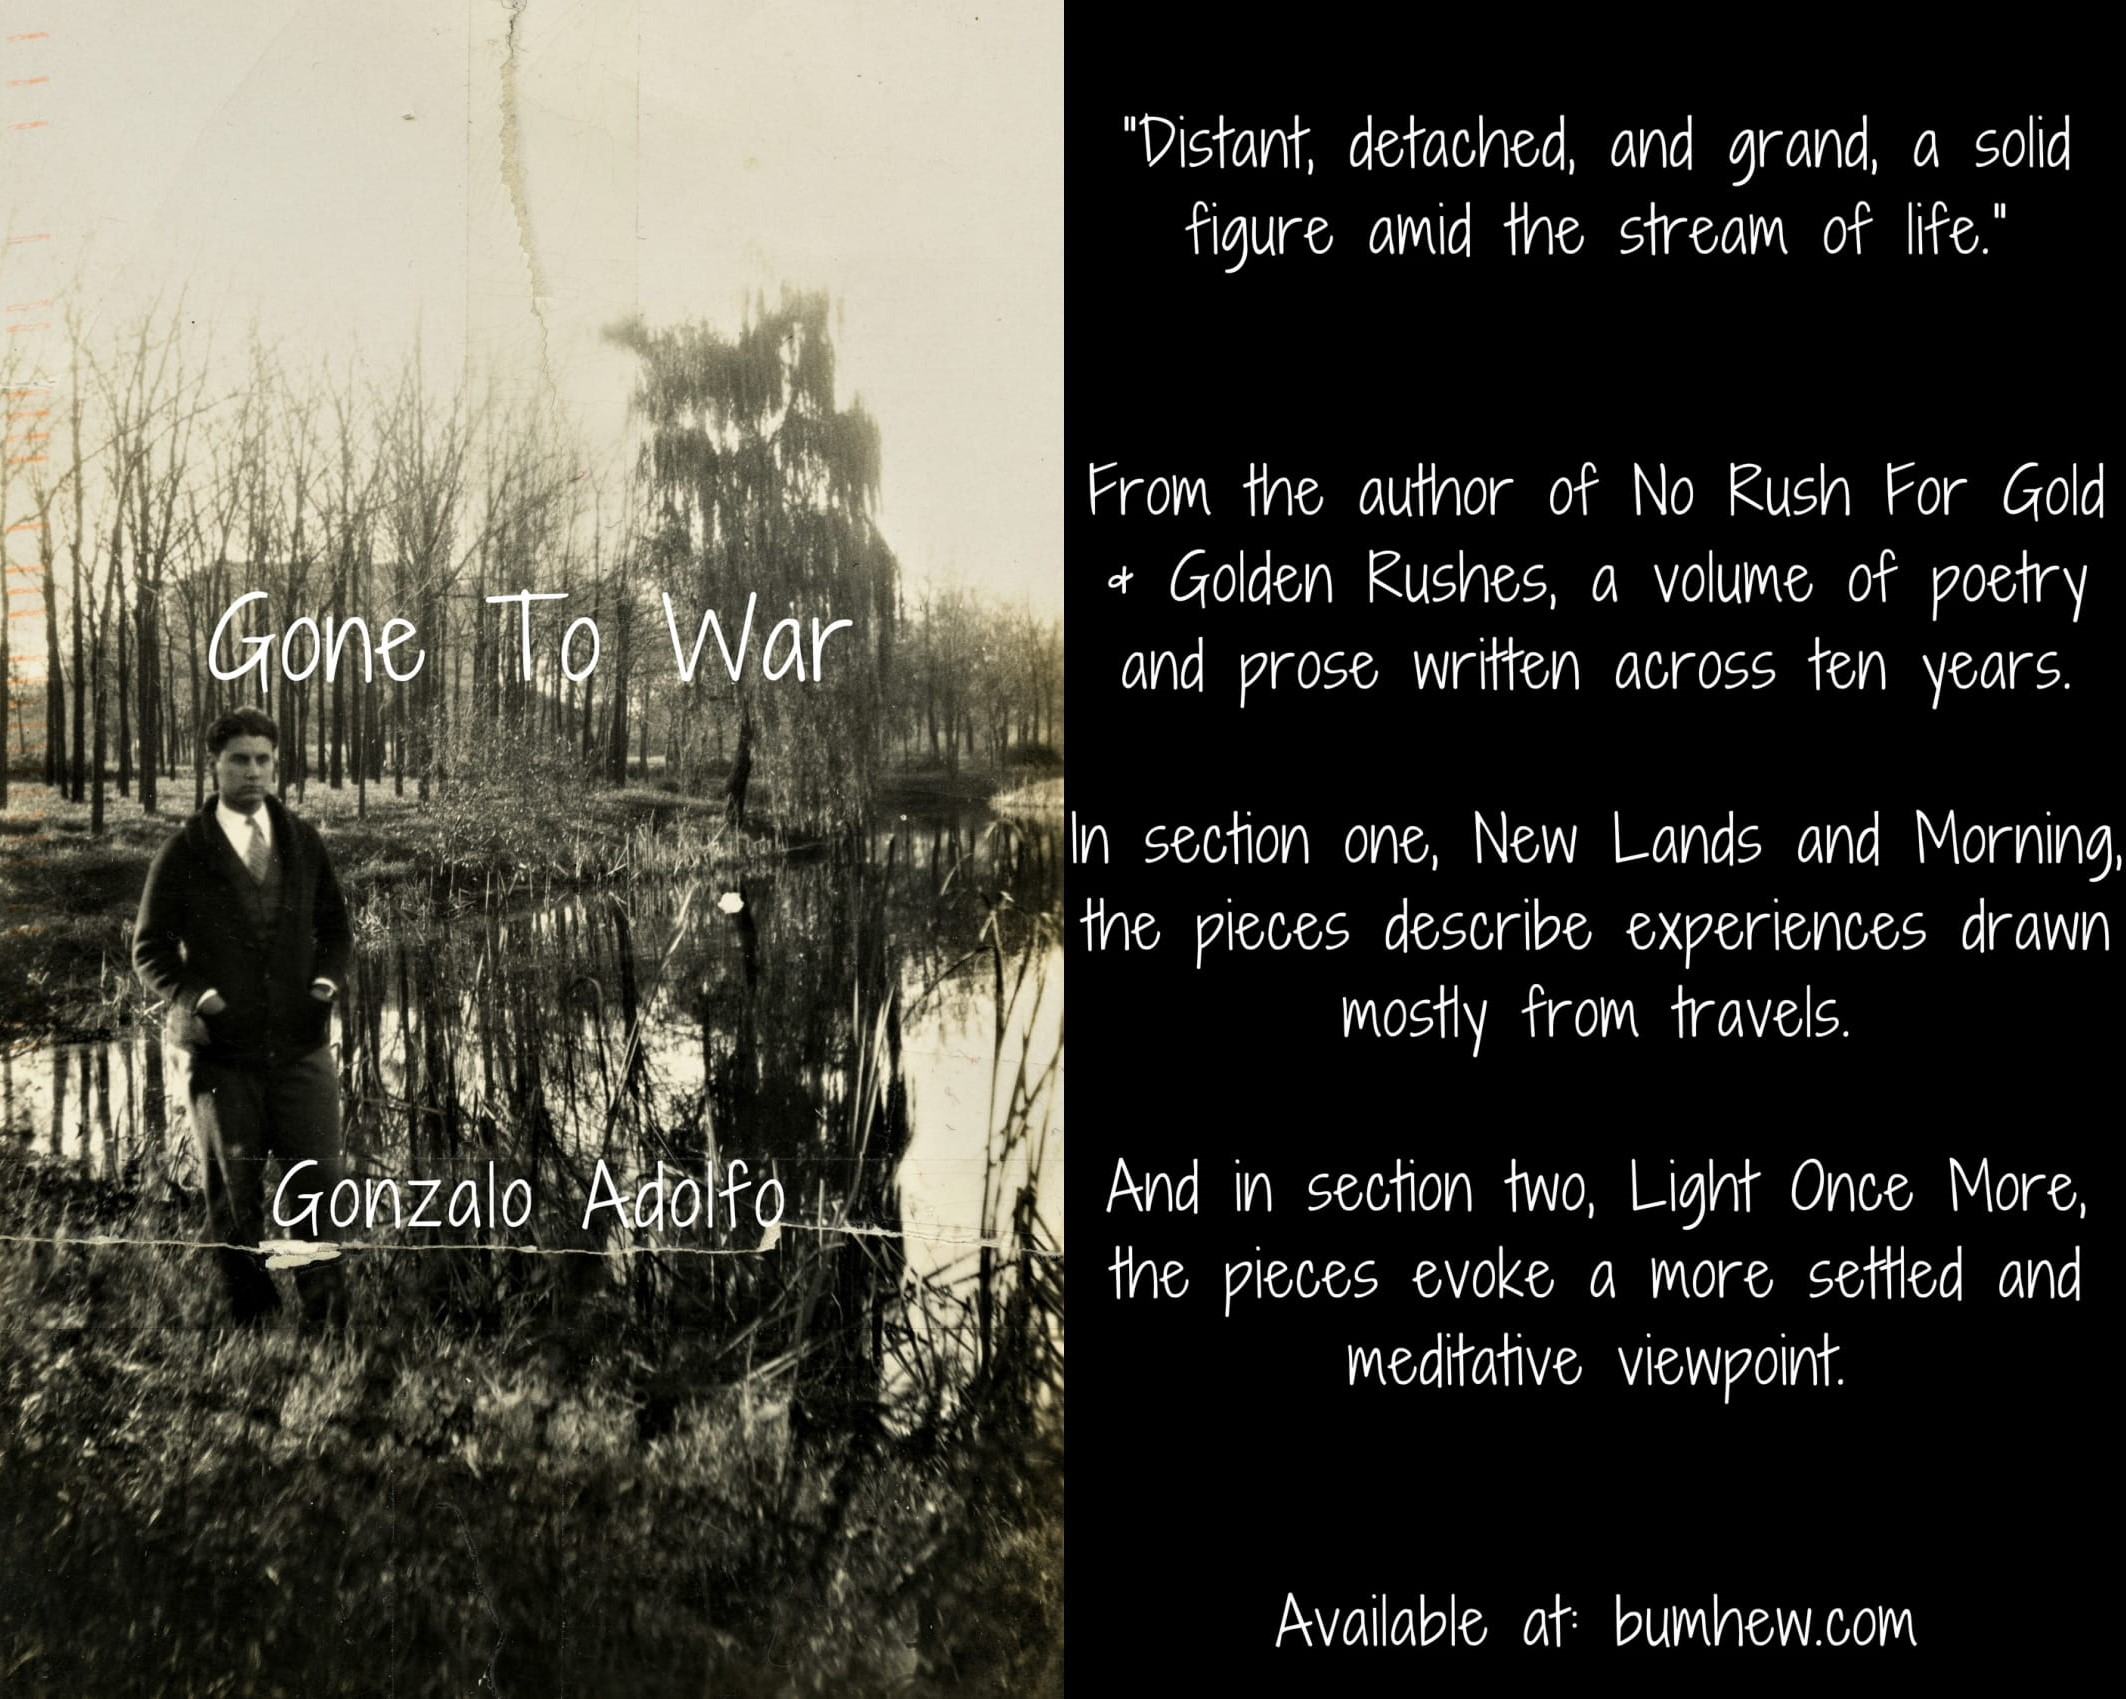 Gone To War. Published by Detached Books in November 2017. Click on image to purchase.